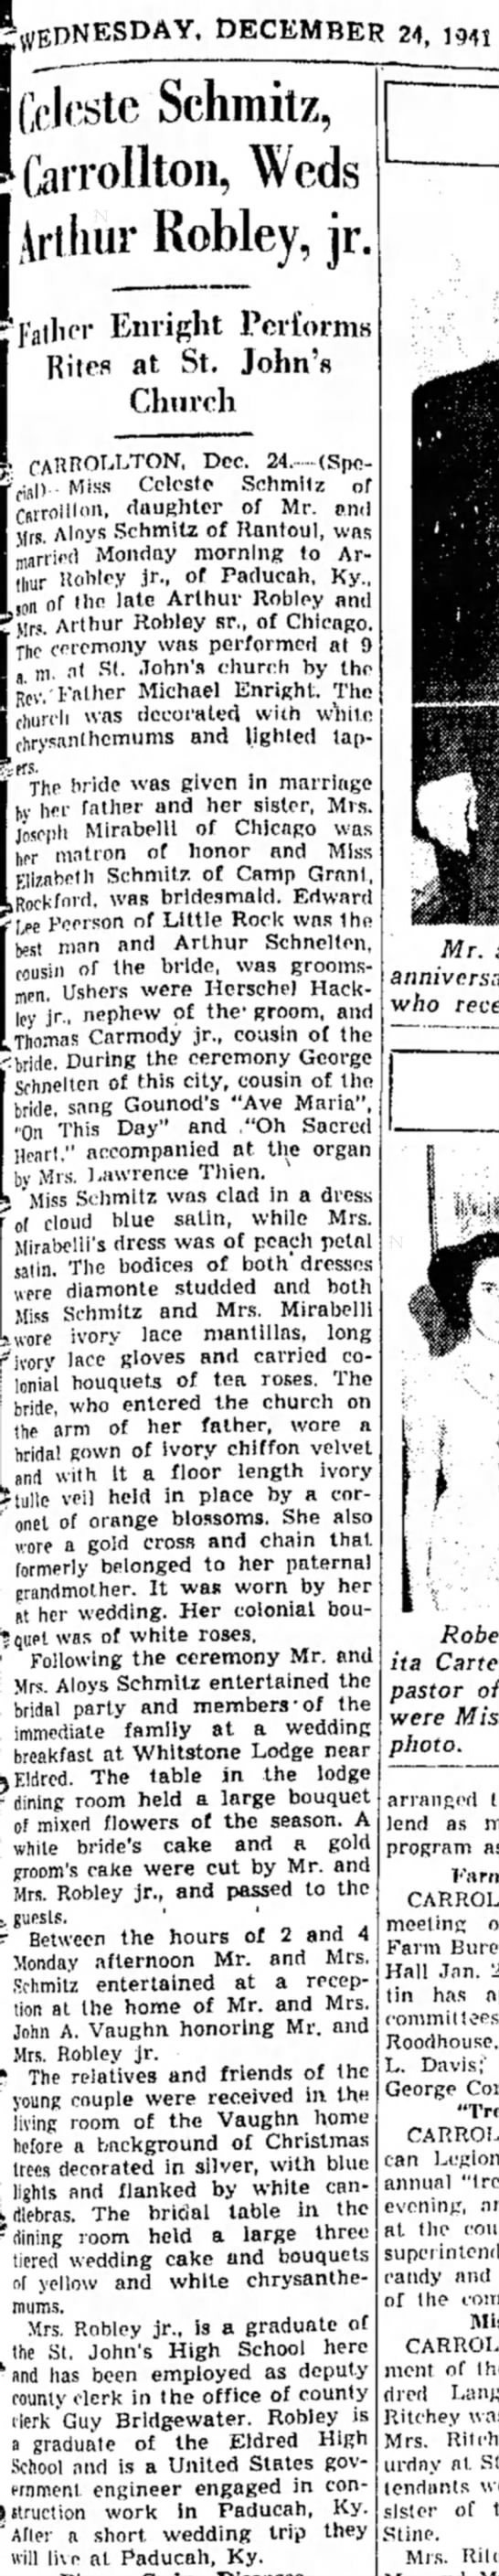 Arthur Robley Jr. Weds-Alton Evening Telegraph, page 5, wed. 24 Dec 1941 - EDNESDAY, DECEMBER 24, Celeste Schmitz,...